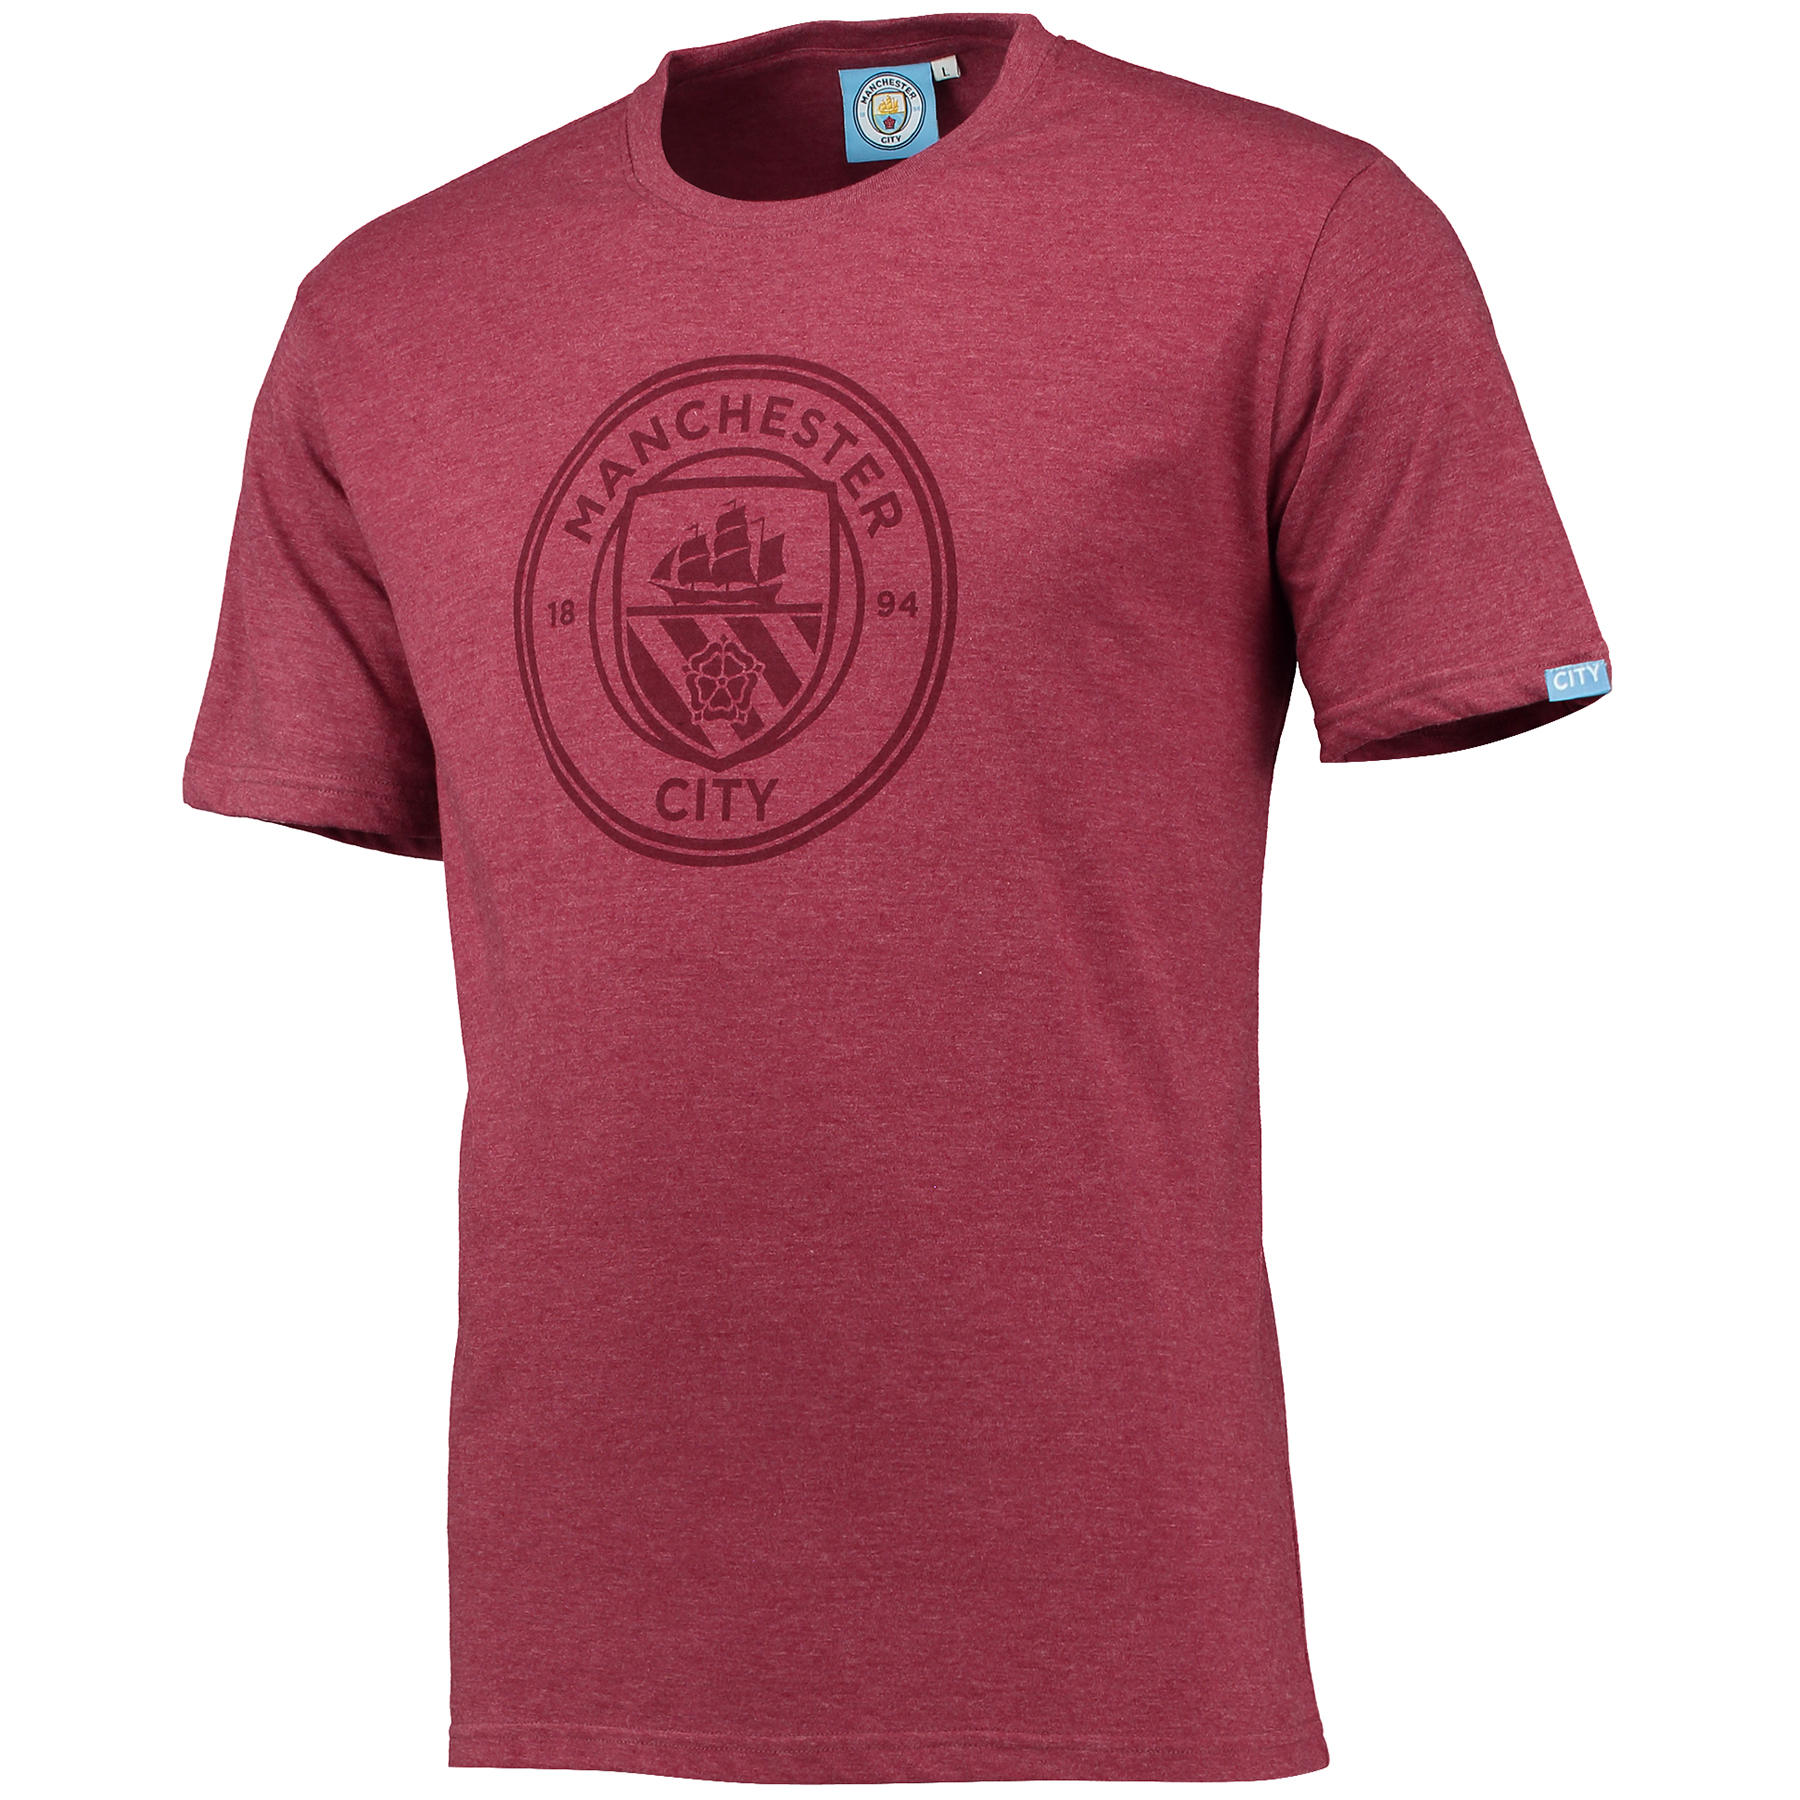 Manchester City Printed Crest T-Shirt - Maroon Marl